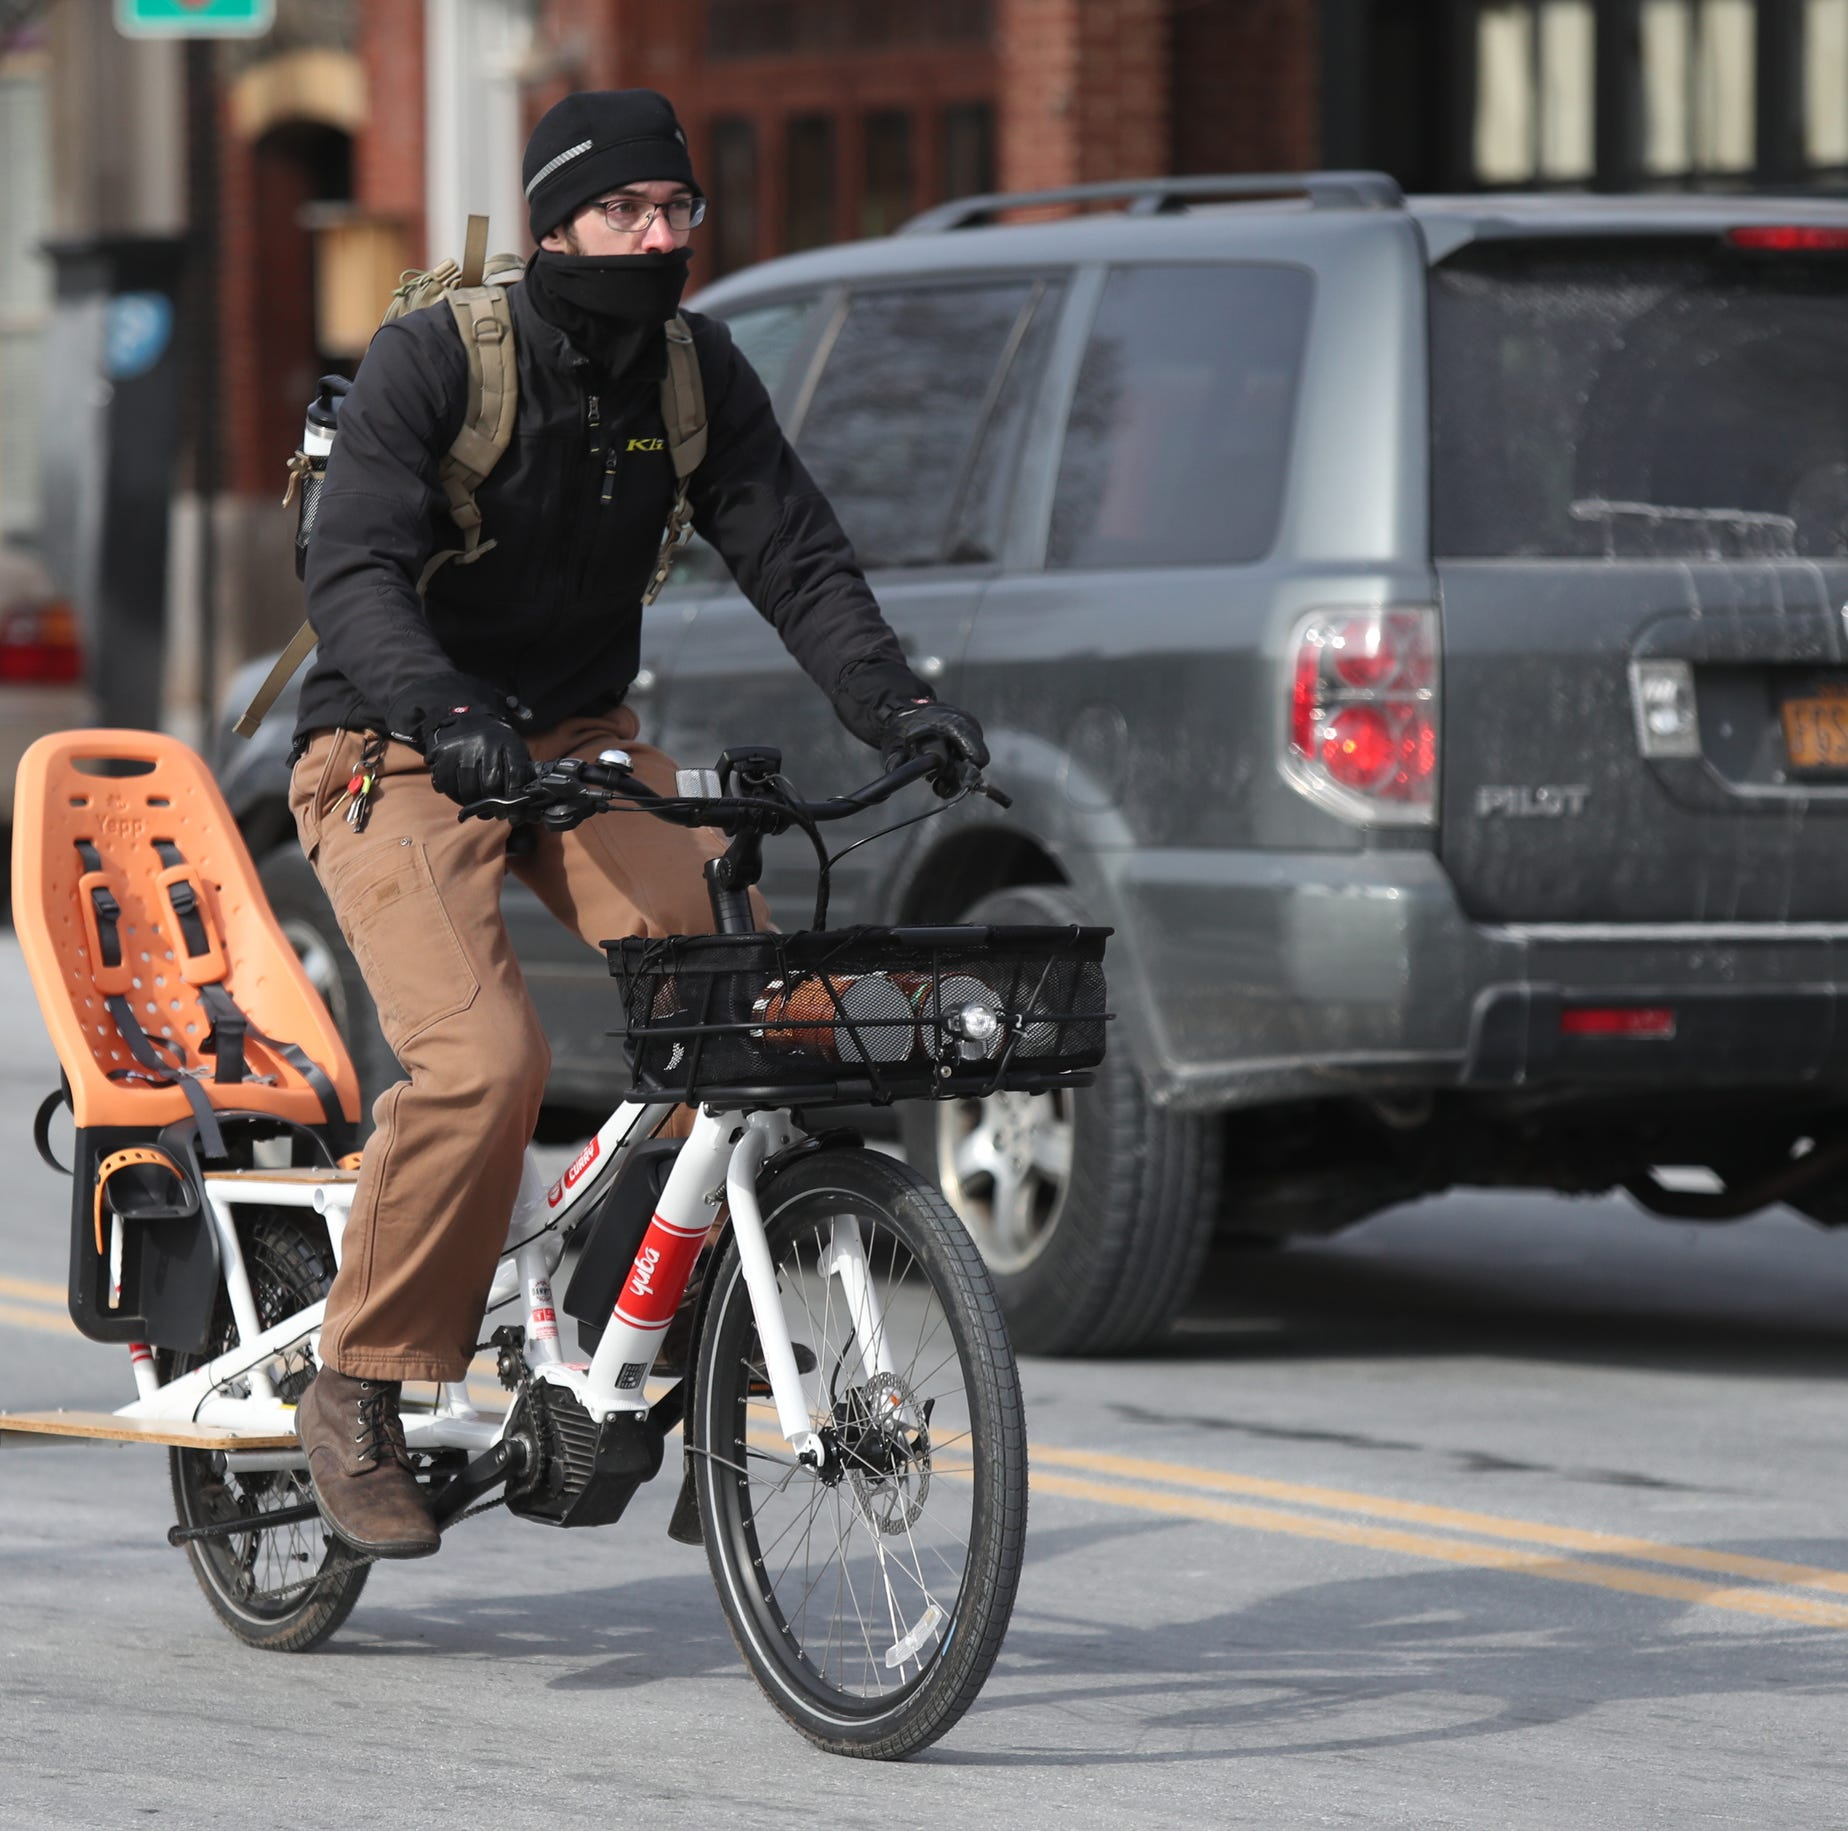 From polar vortex to 52 degrees: The impacts on your health and the roads